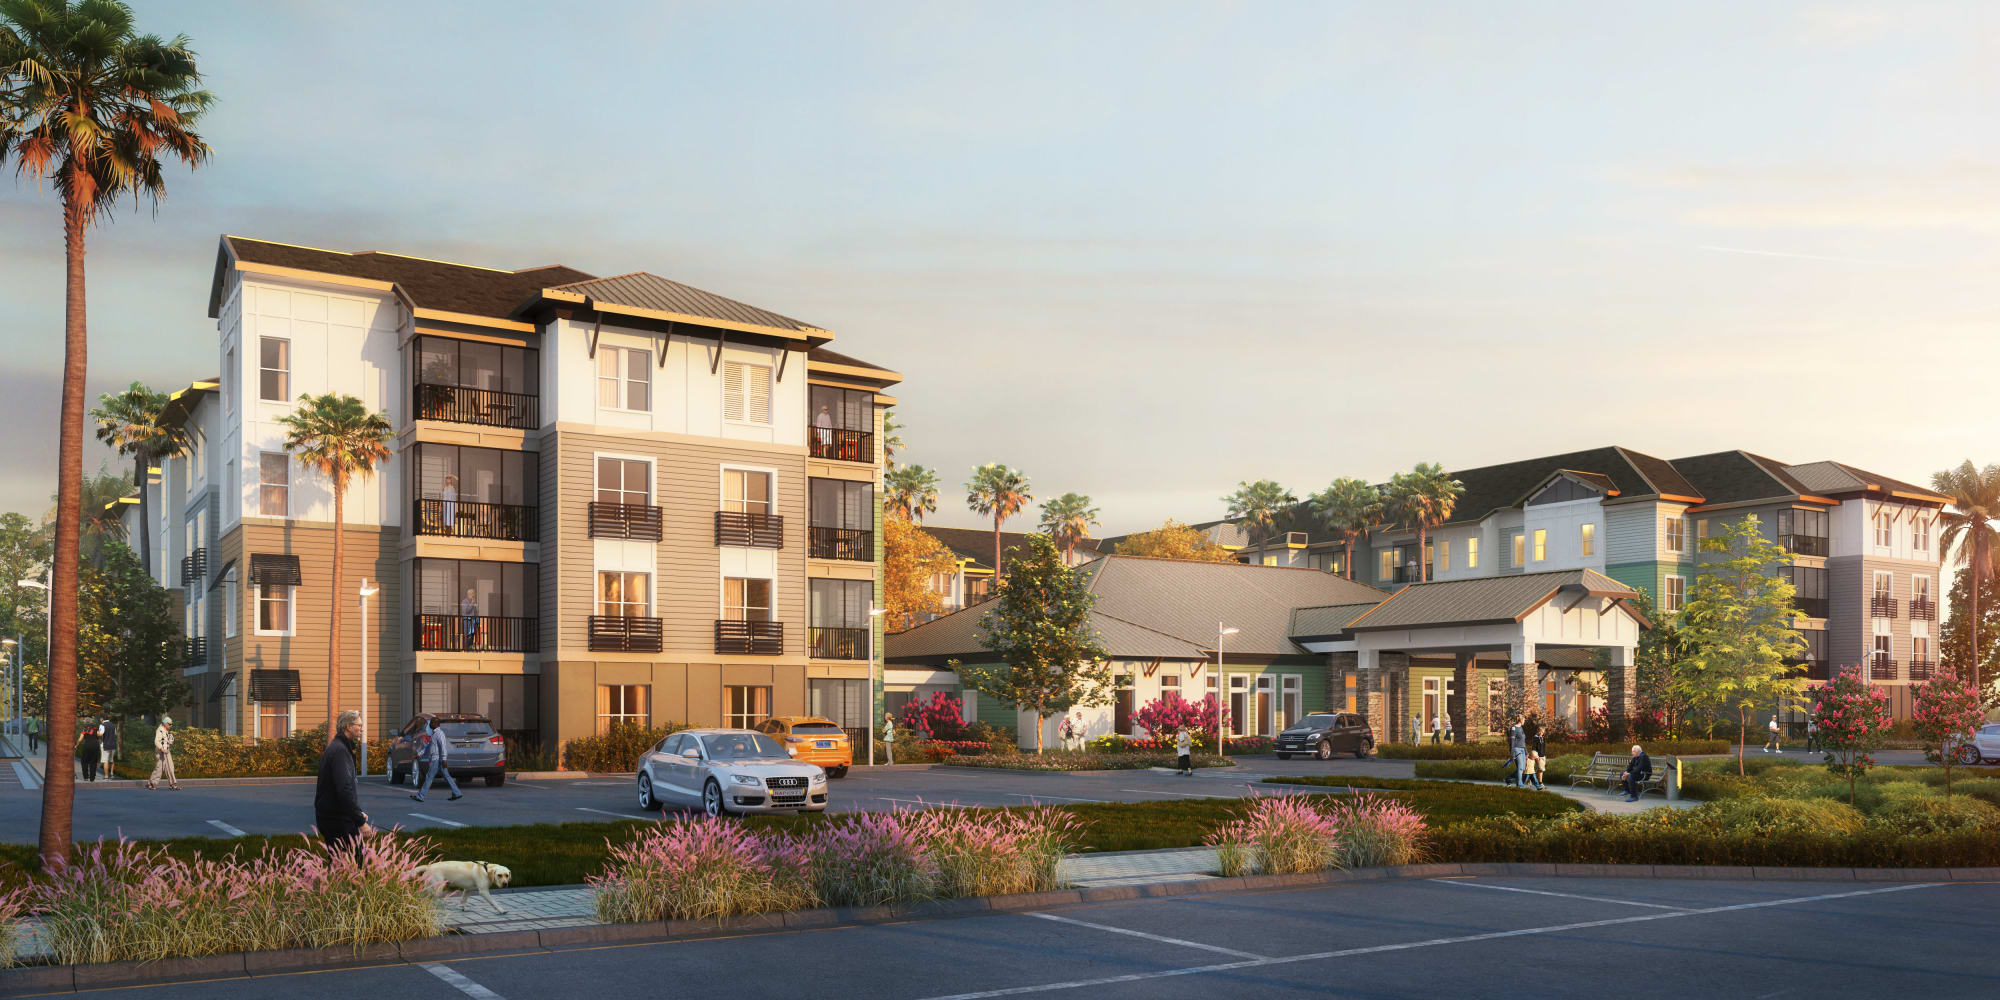 Exterior rendering of The Pointe at Siena Ridge in Davenport, Florida